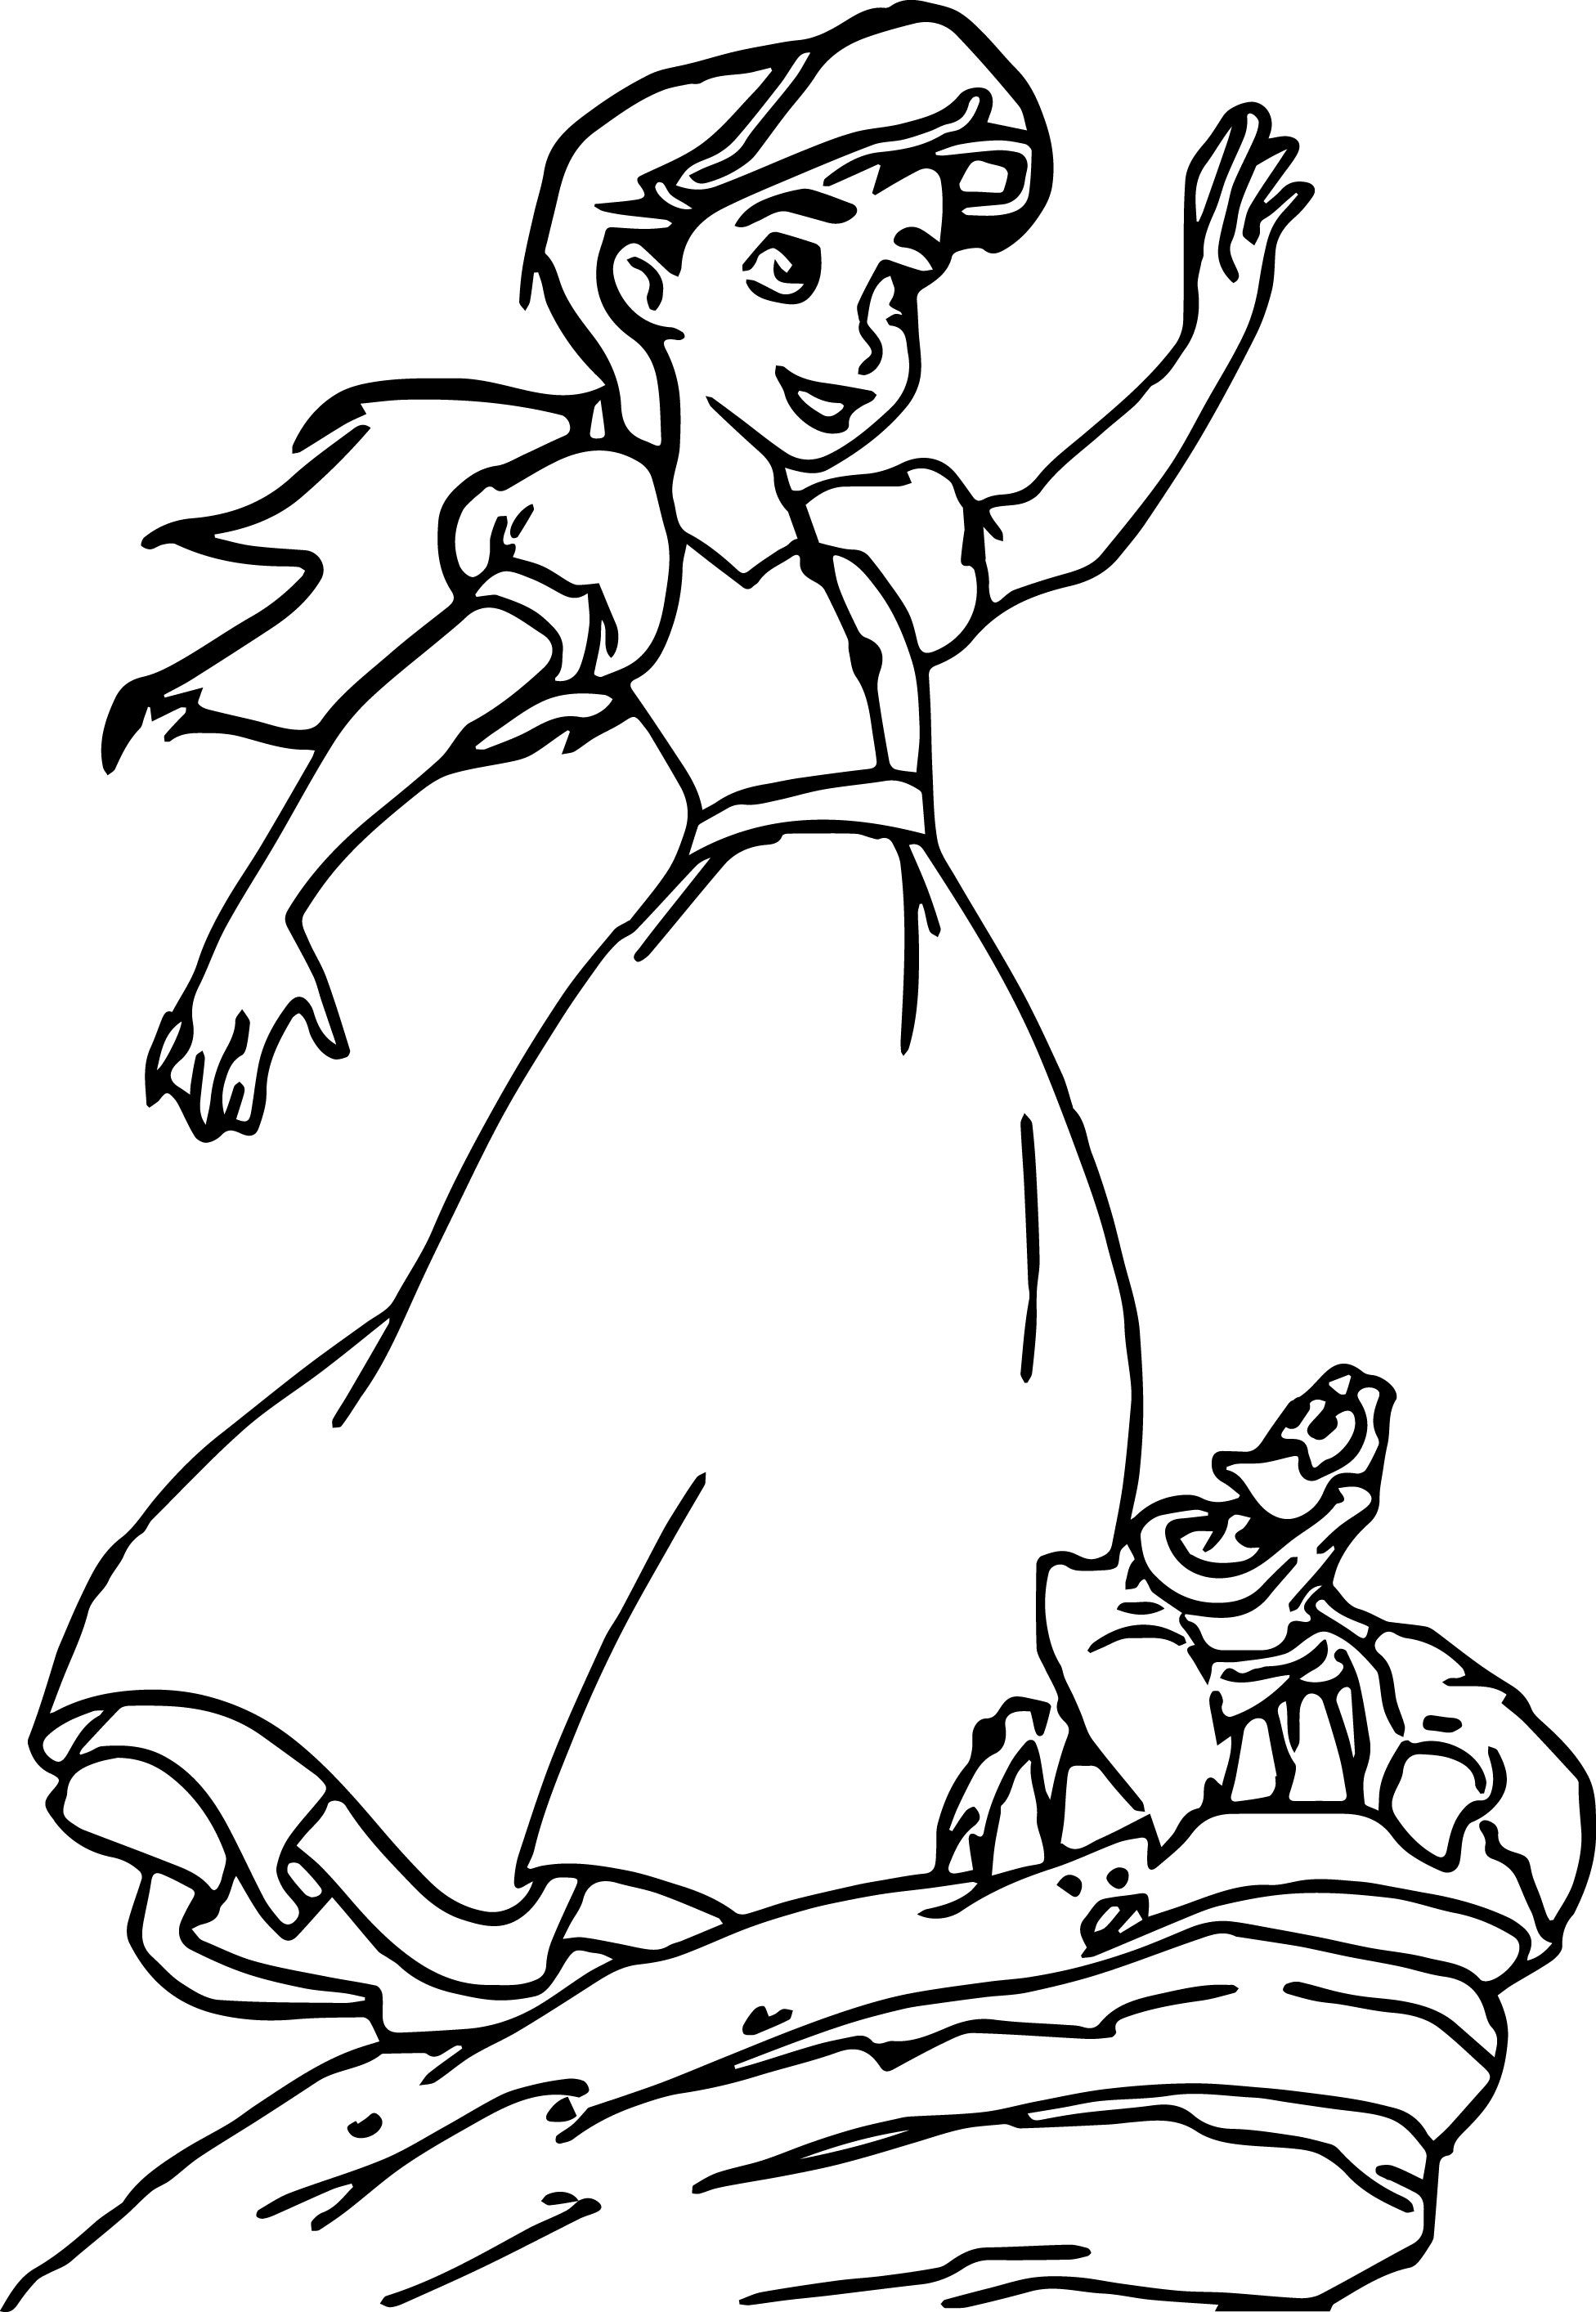 Disney The Little Mermaid 2 Return to the Sea Coloring Page 18 ...